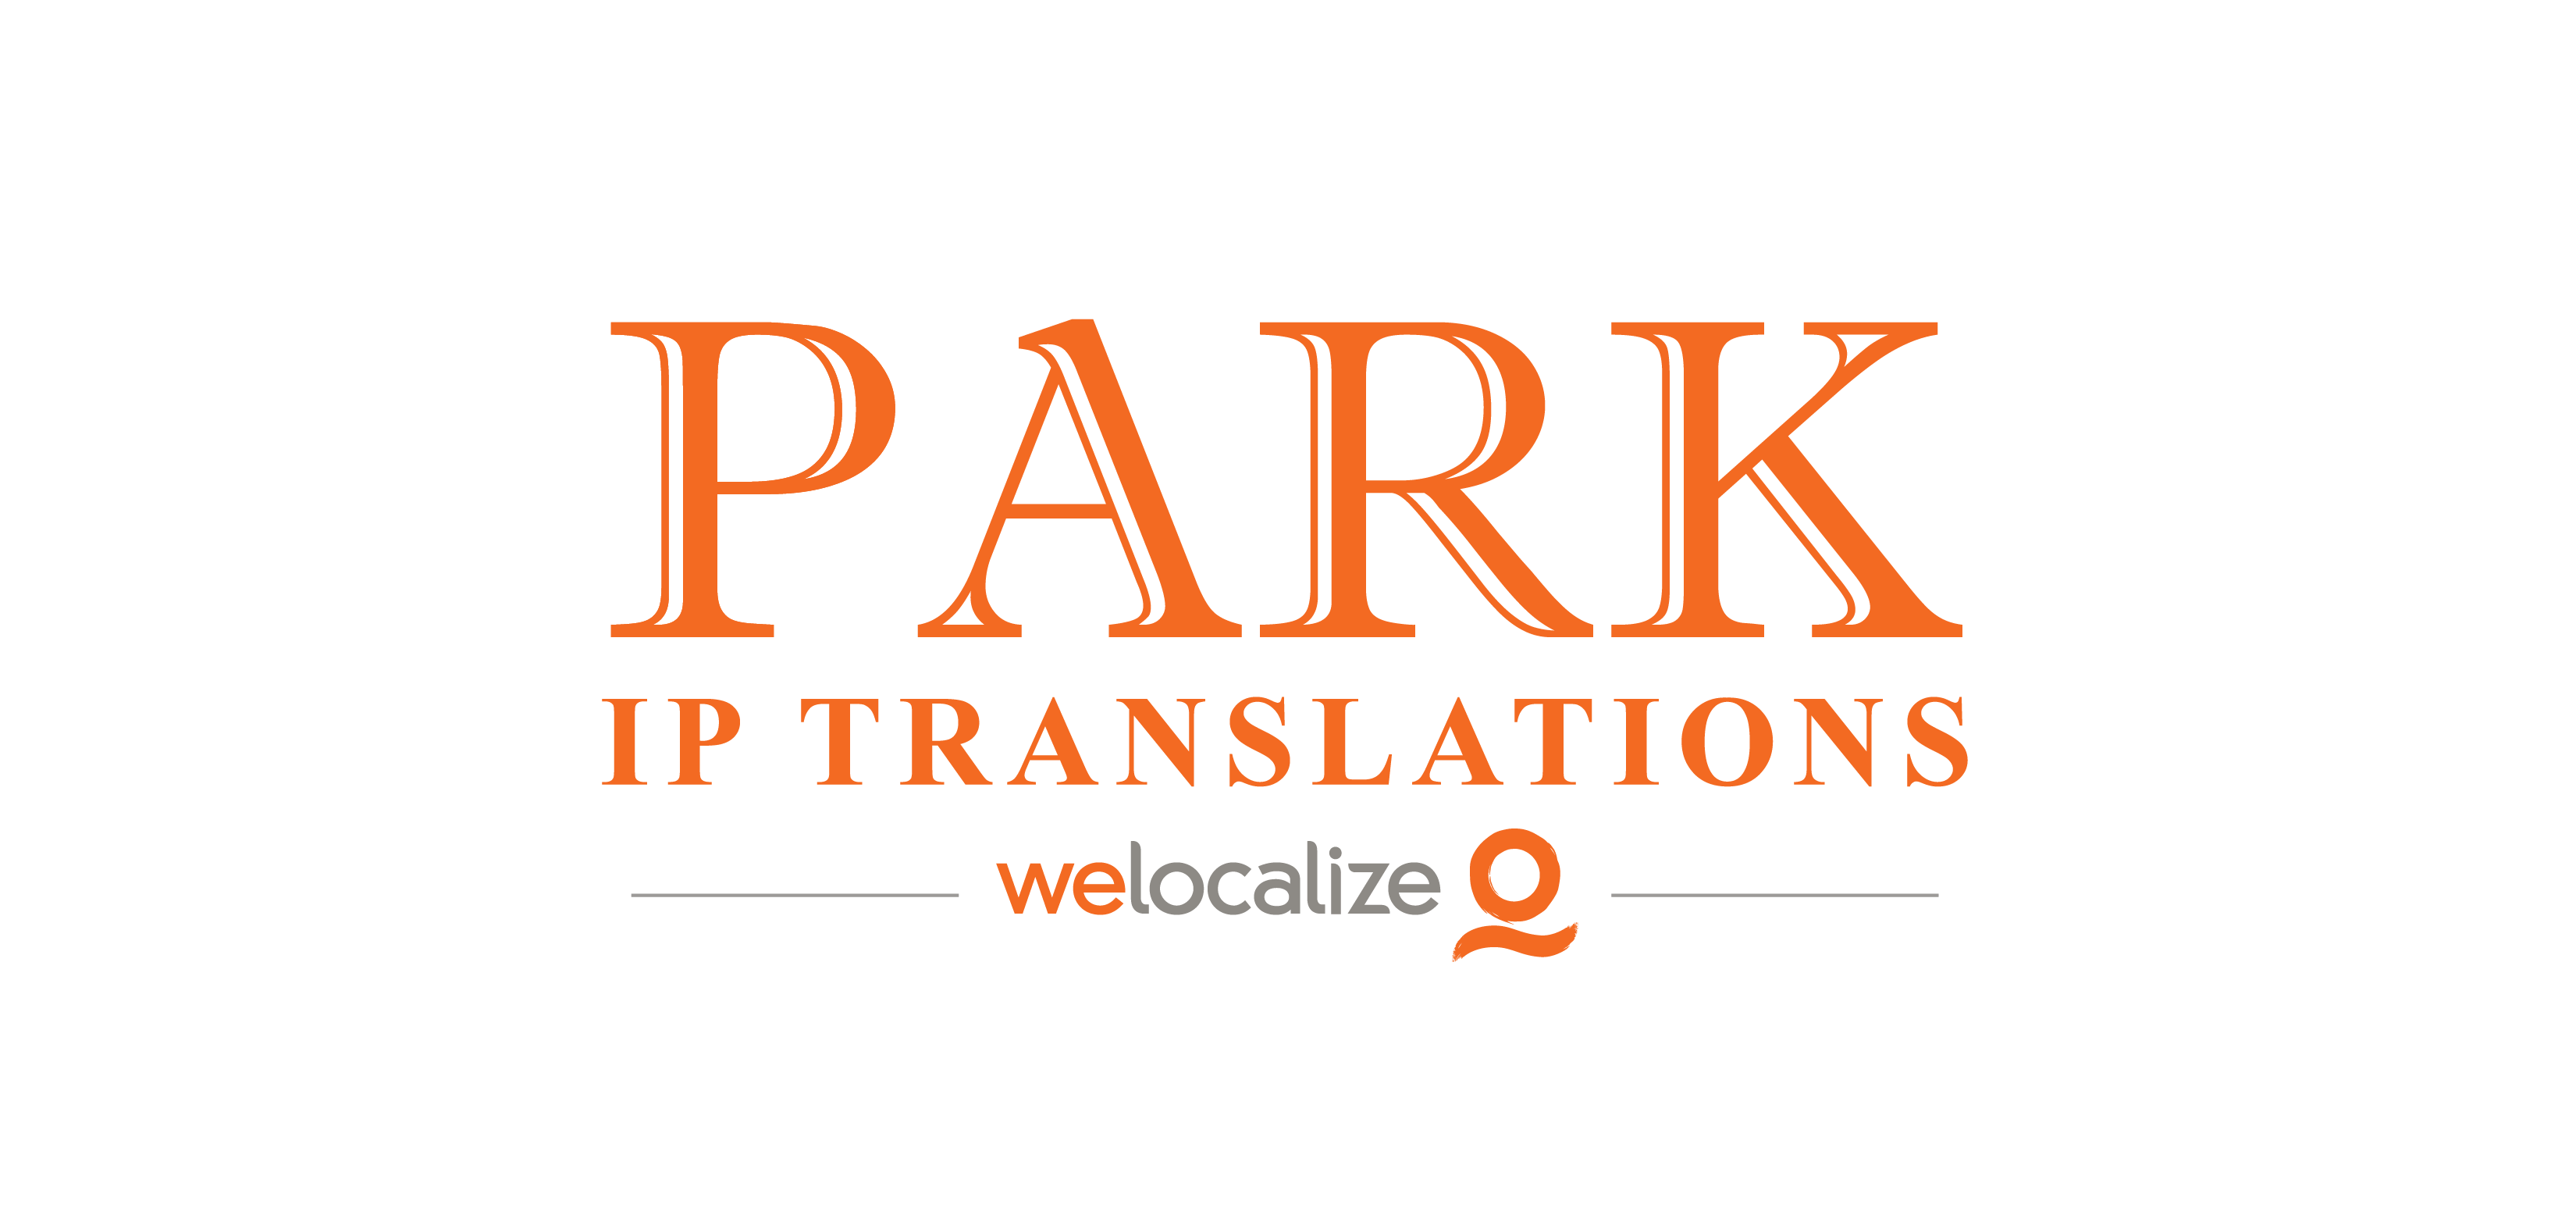 Park IP, a Welocalize Company, Announces Compatibility With Aero UI